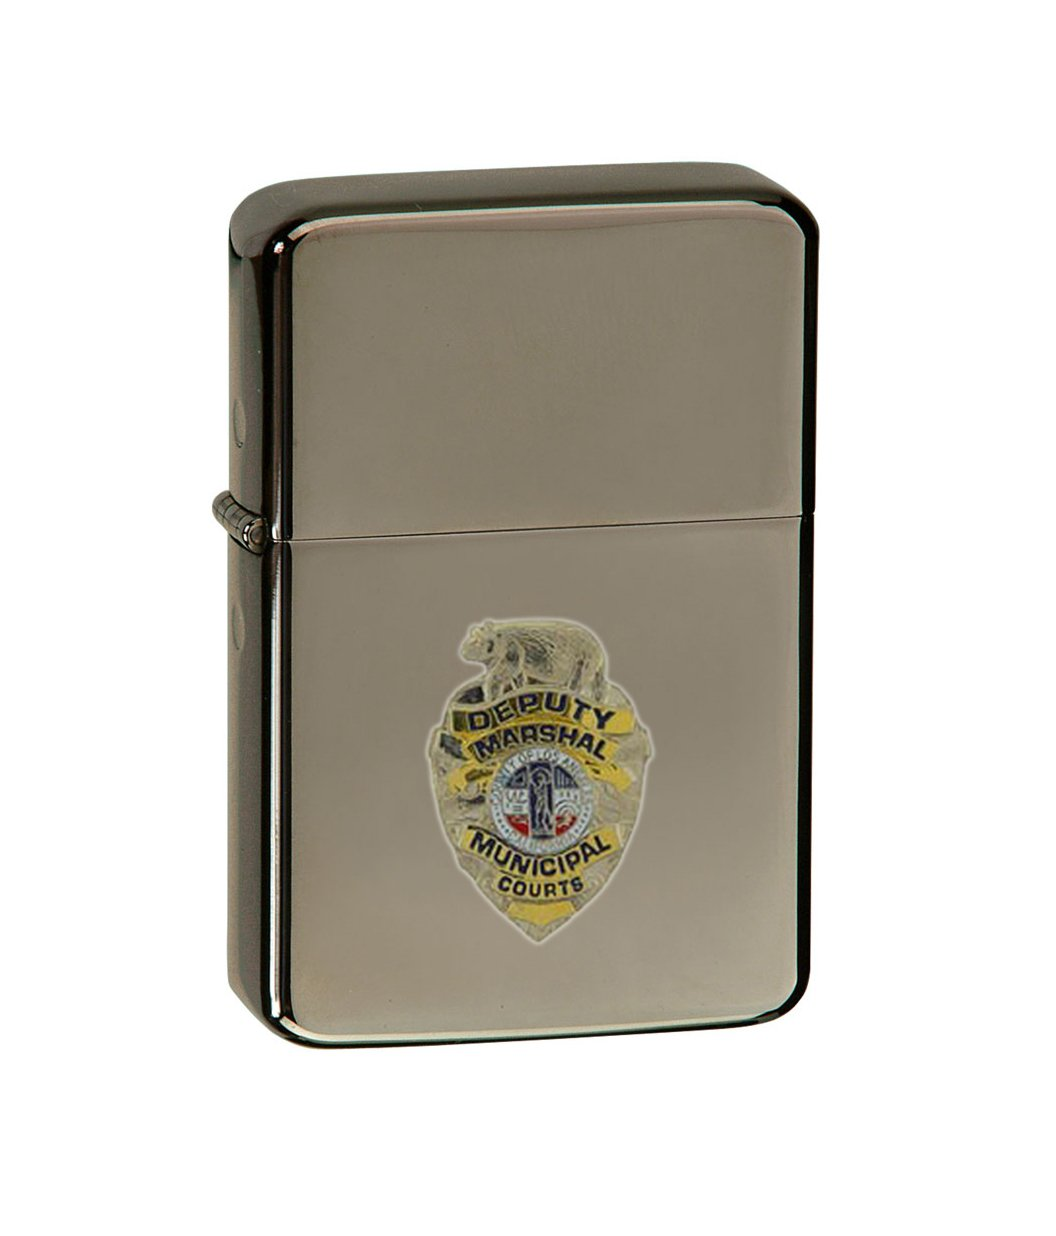 Vector KGM Thunderbird Emblem Sparkle Black Lighter - Law Enforcement Pin Collector Series - Police Badge Pins - Los Angeles, CA Deputy Marshall